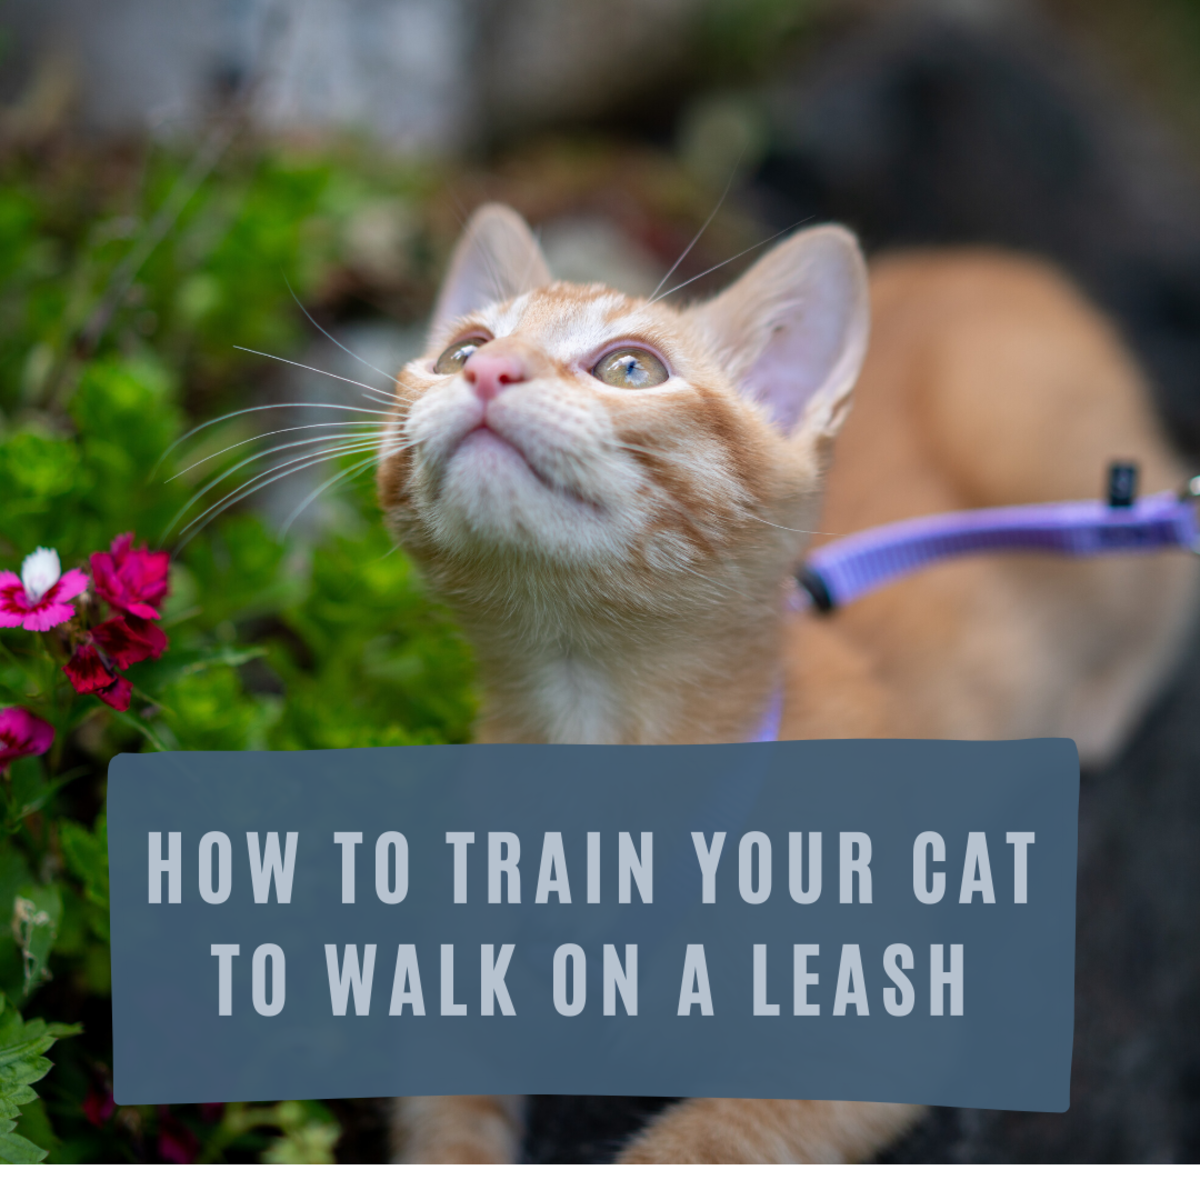 How to Train Your Cat to Walk on a Leash or Cat Harness